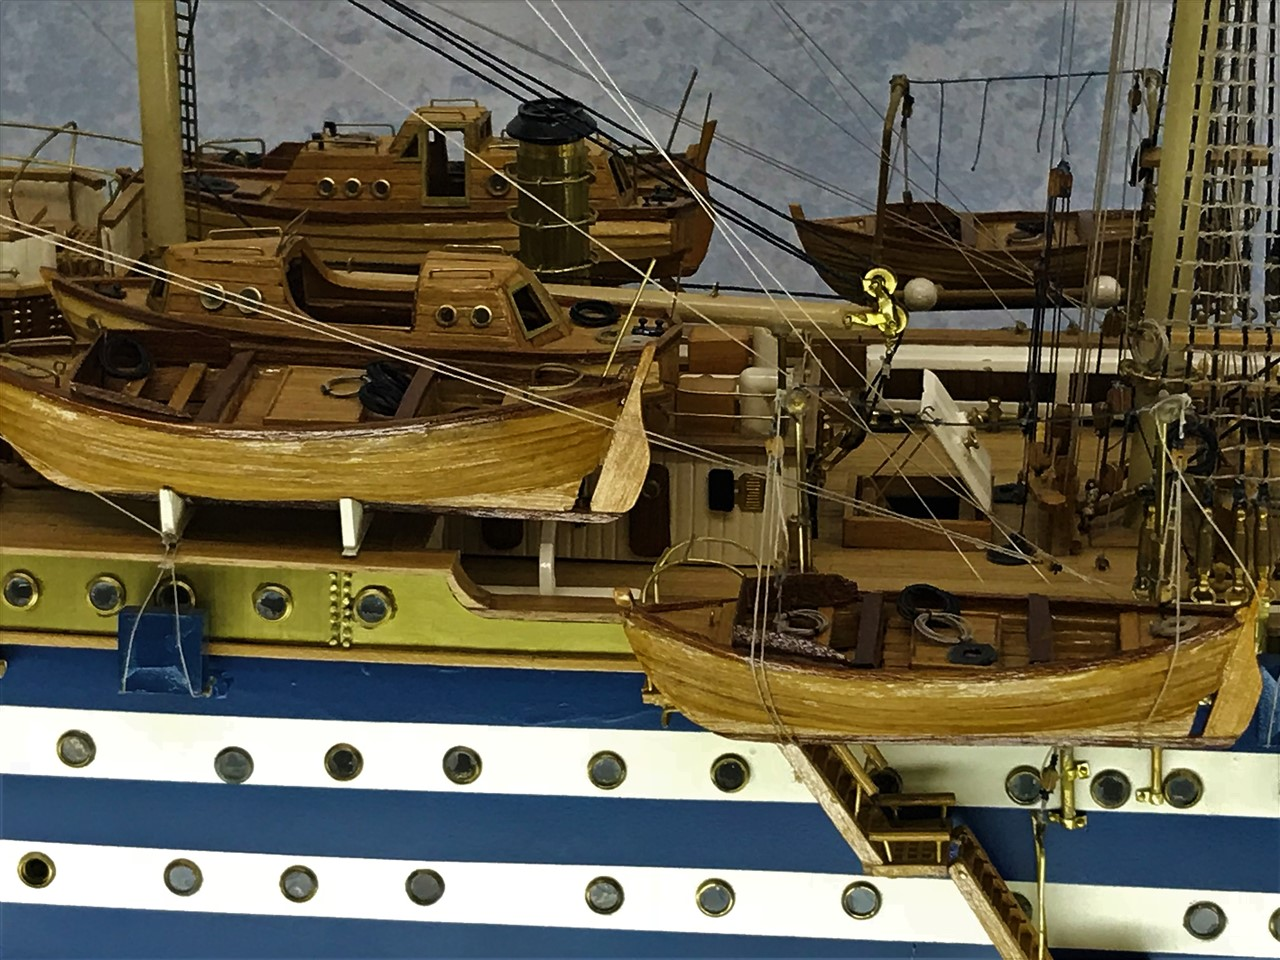 2018 04 28 38 Canton OH Model Ship Museum.jpg